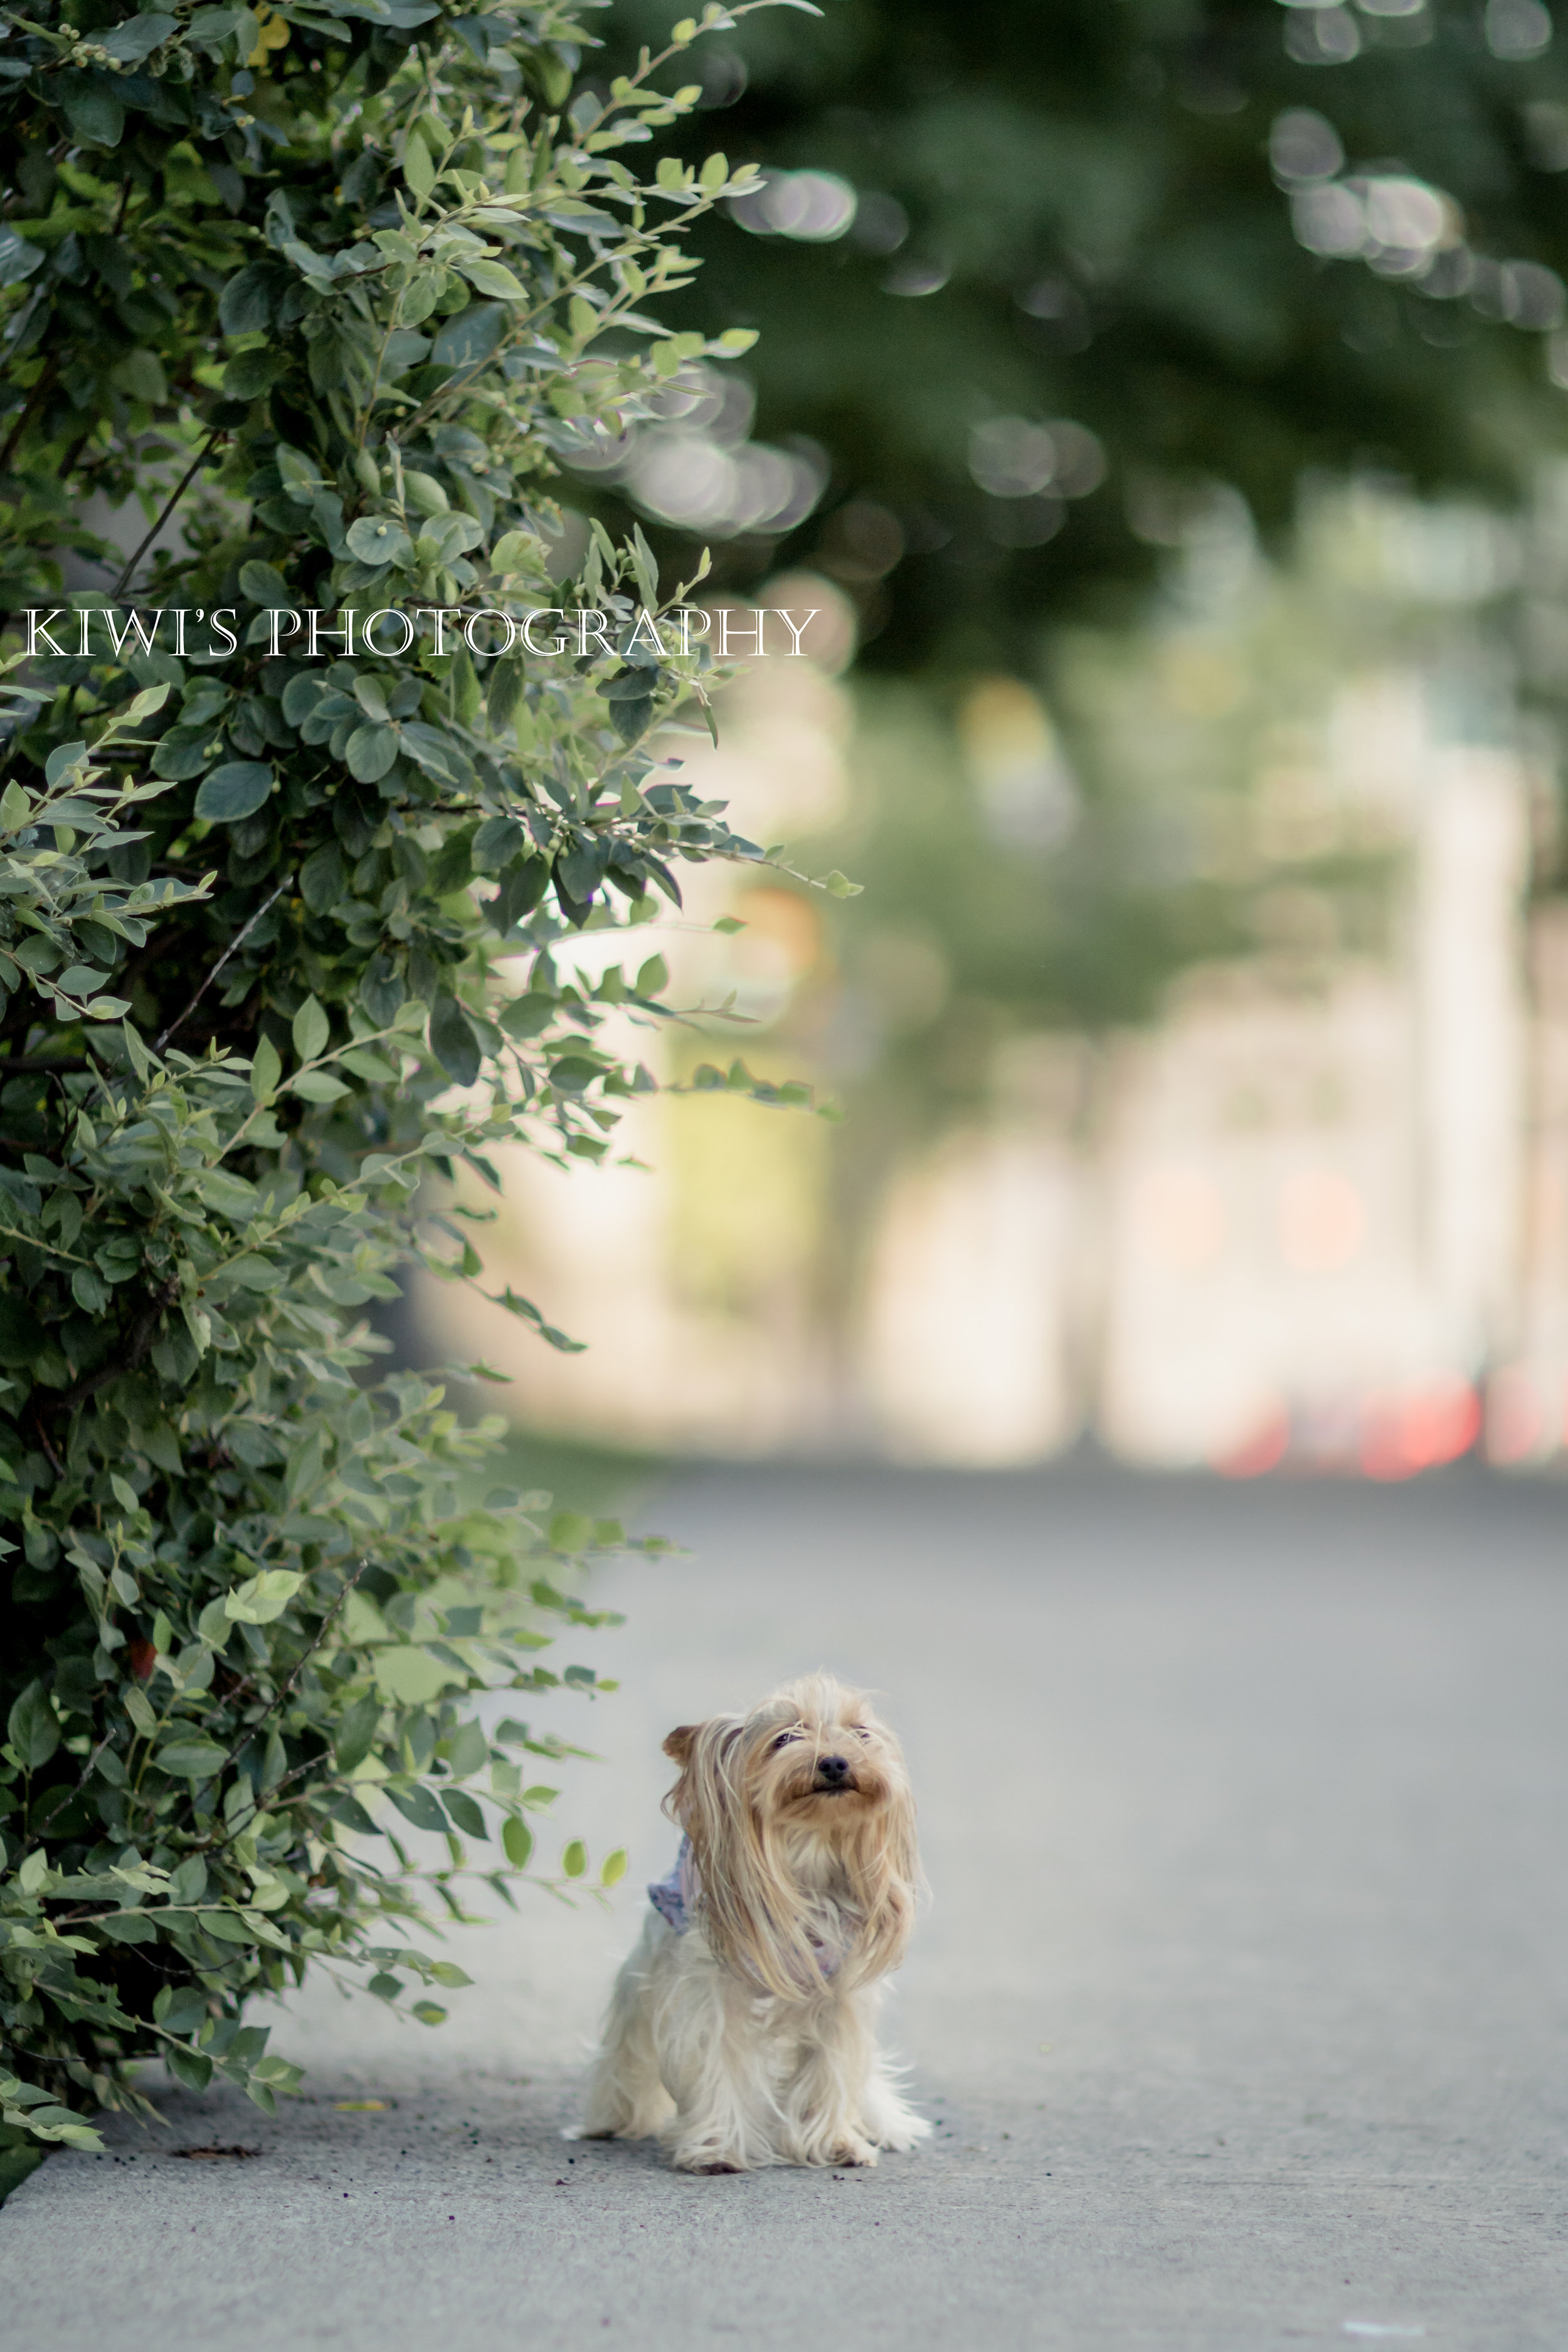 ottawa pet photographer - how i met my best friend - jessica and rini